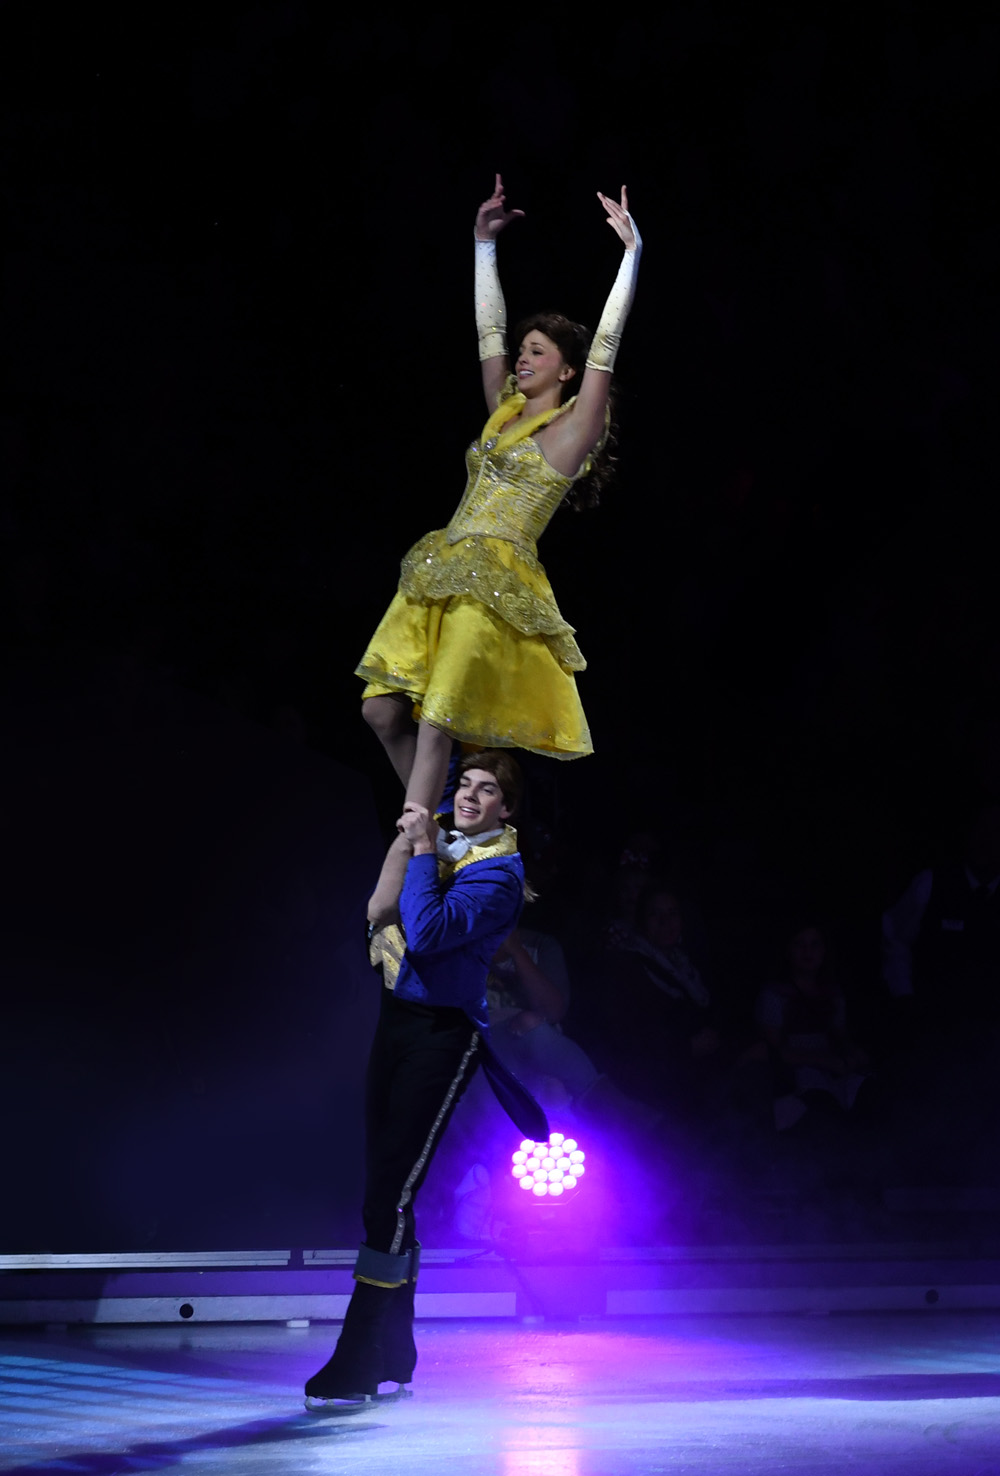 Disney On Ice Dare to Dream - Beauty & The Beast